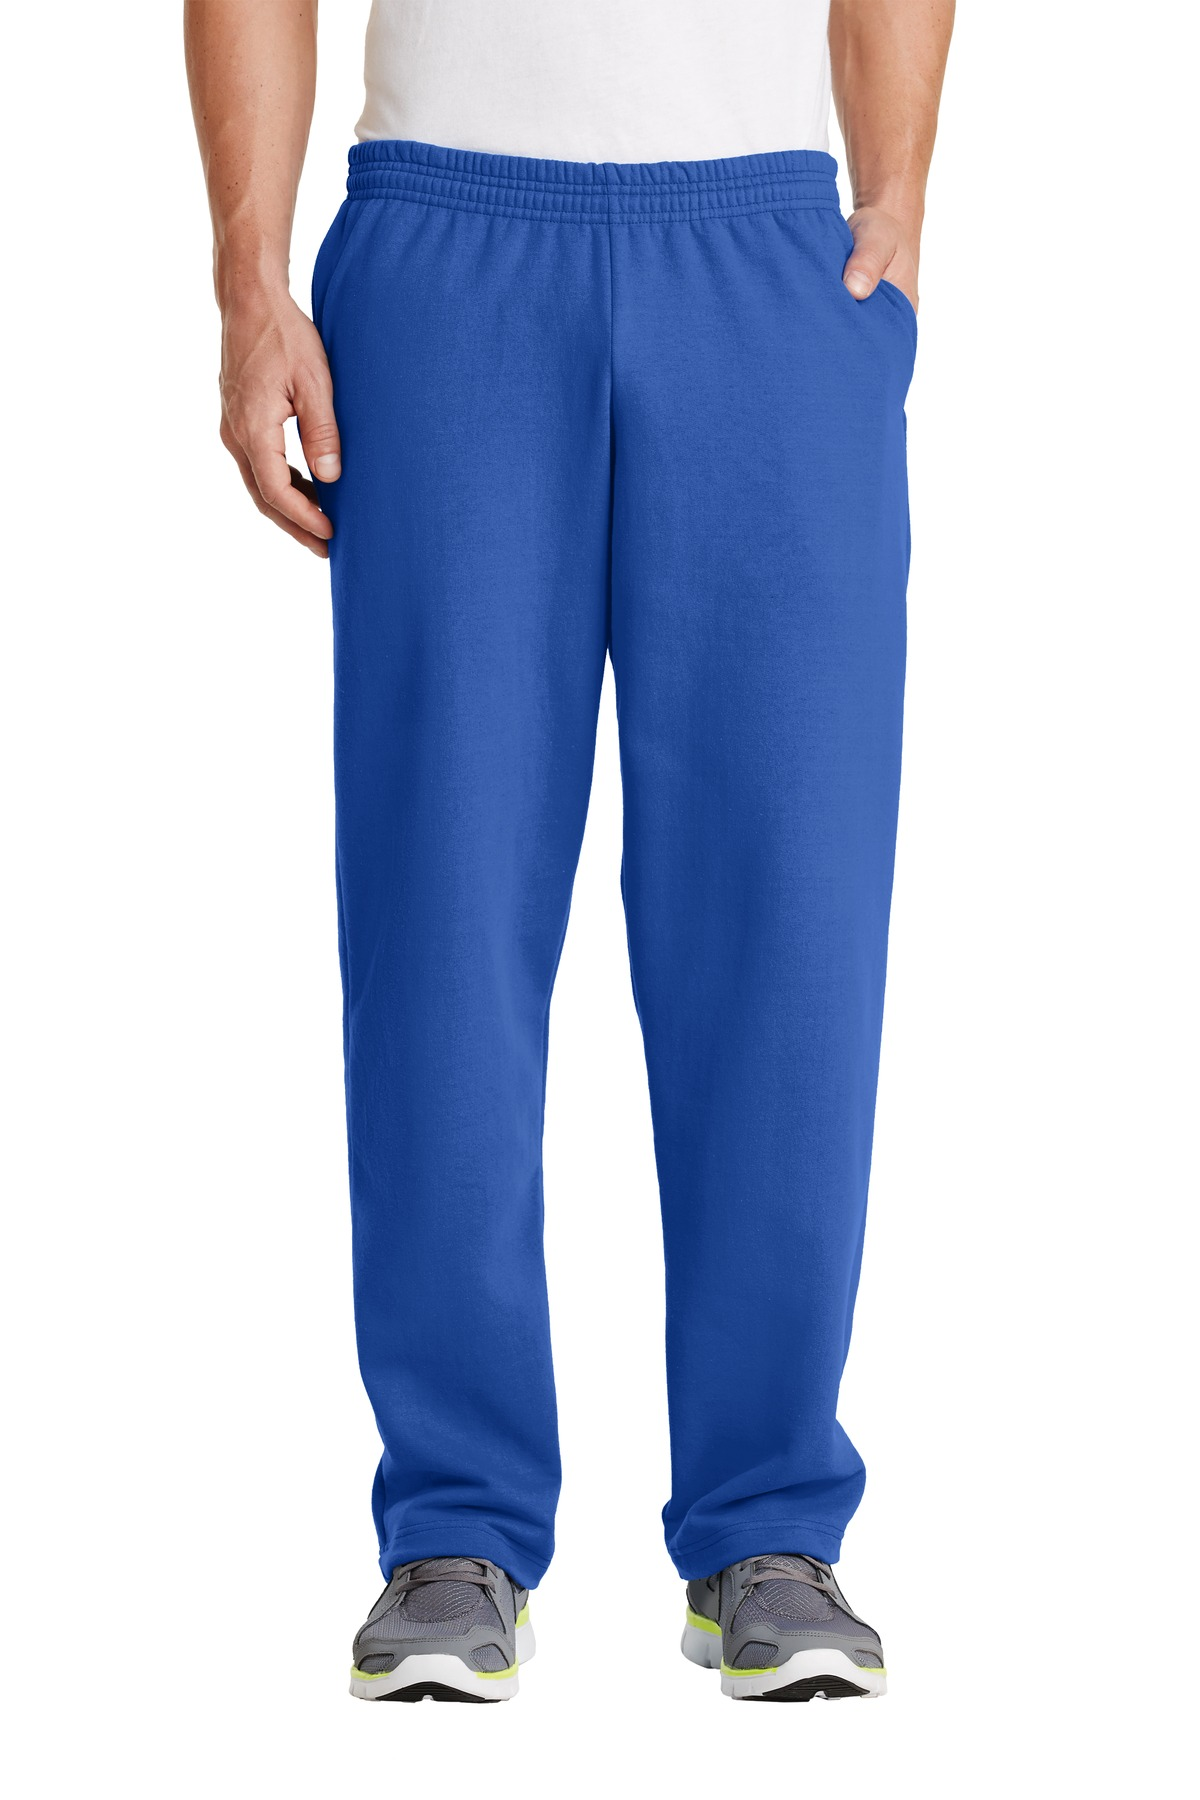 Port & Company ®  - Core Fleece Sweatpant with Pockets. PC78P - Royal